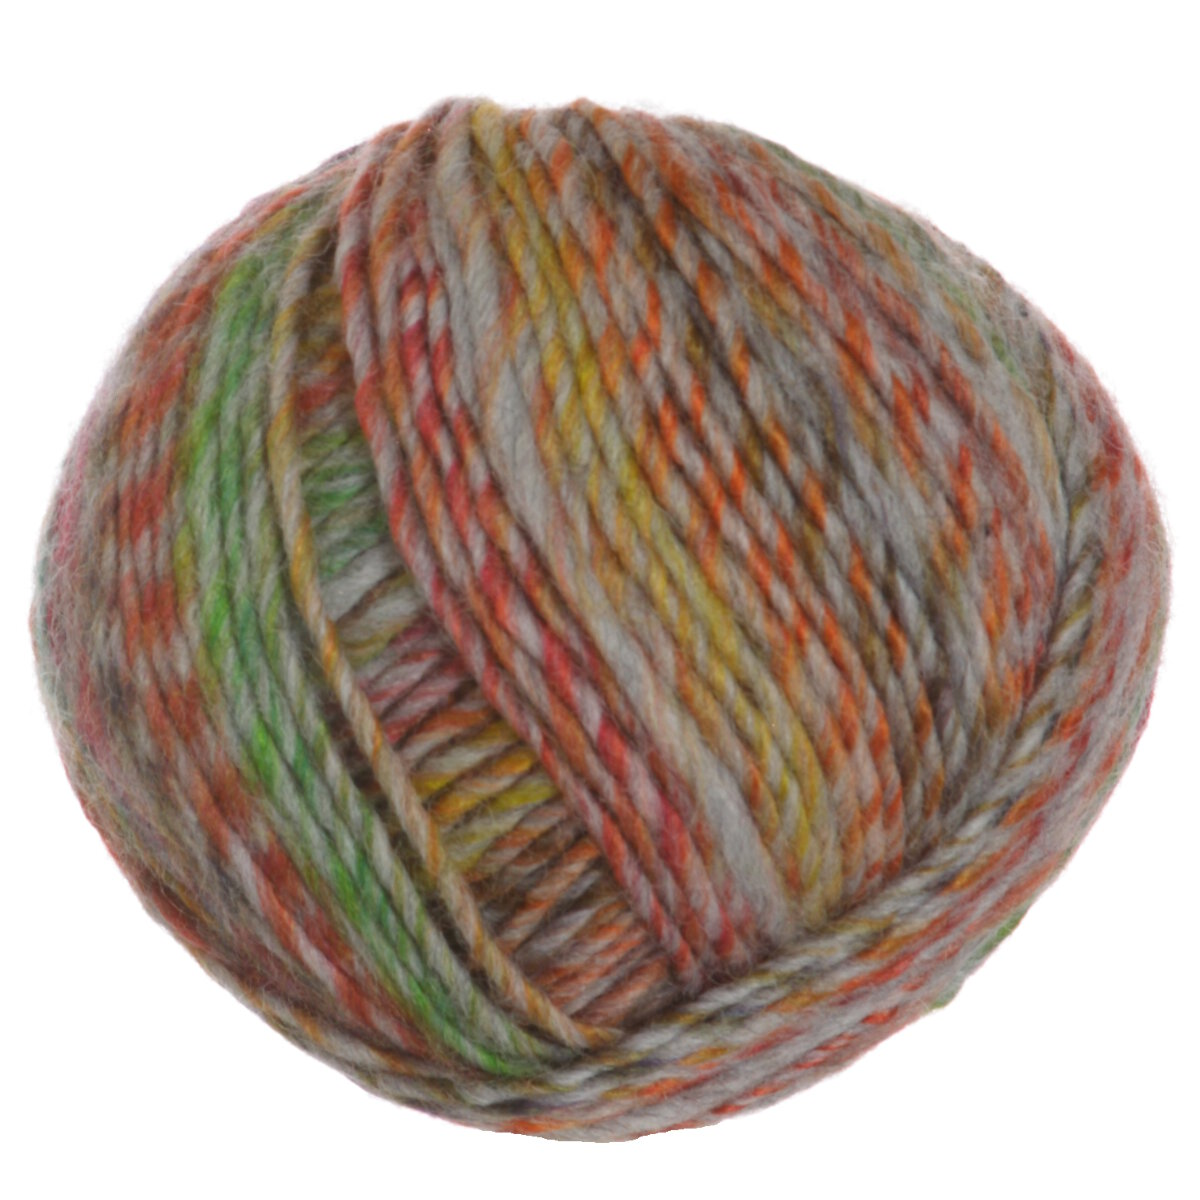 Knitting With Two Colors Carrying Yarn : Plymouth yarn stained glazz grey colors at jimmy